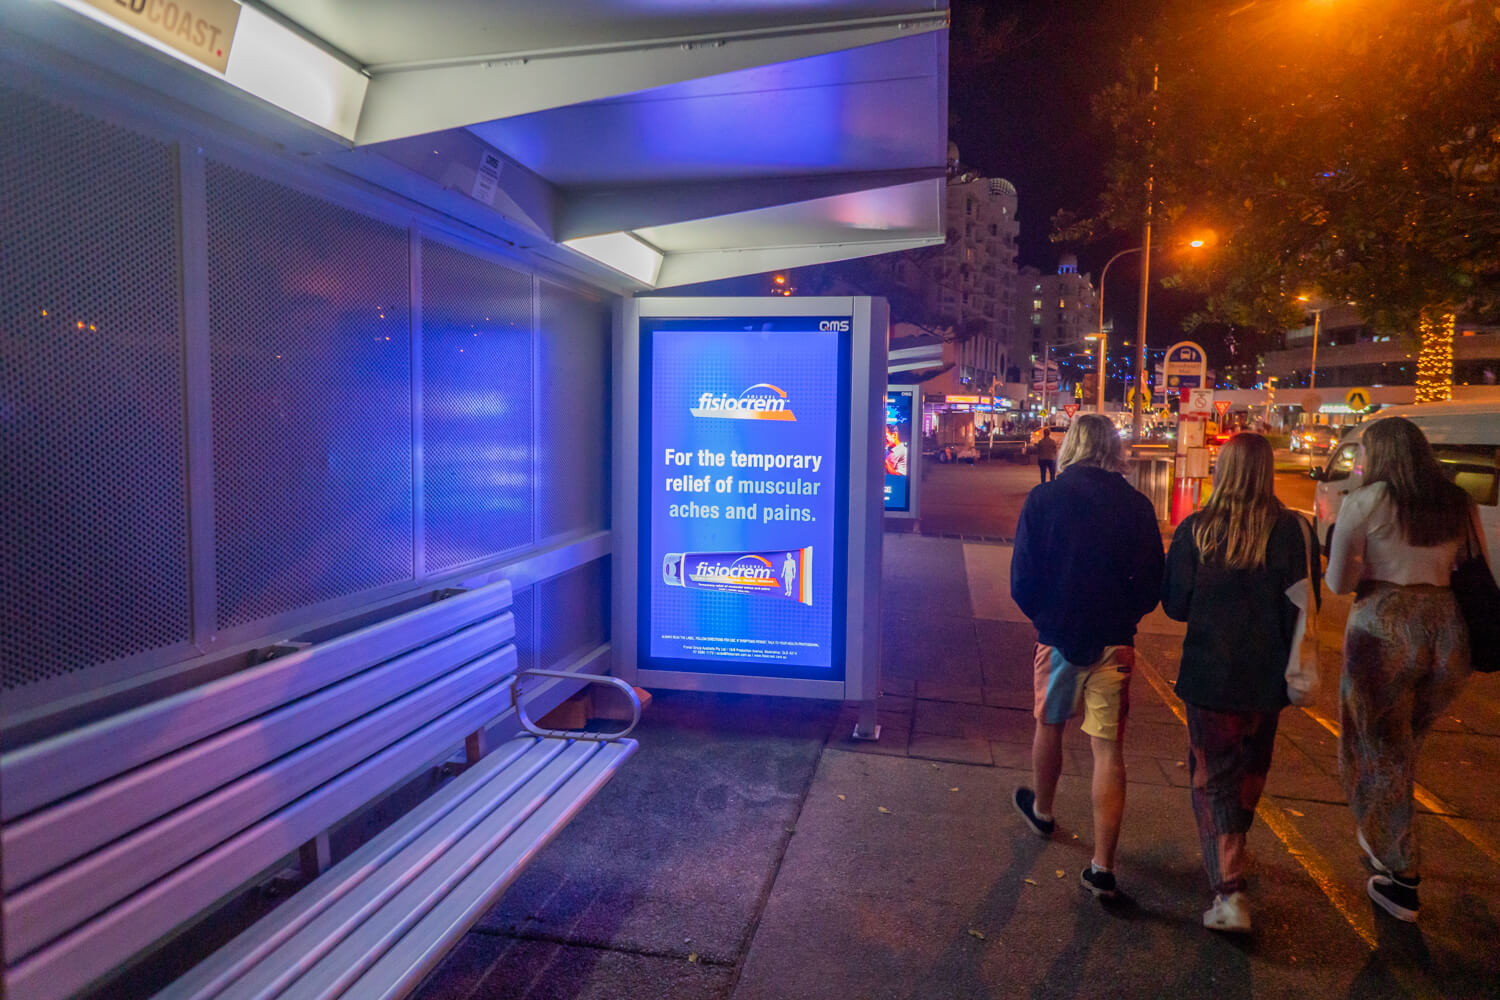 bus shelter advertisement cost